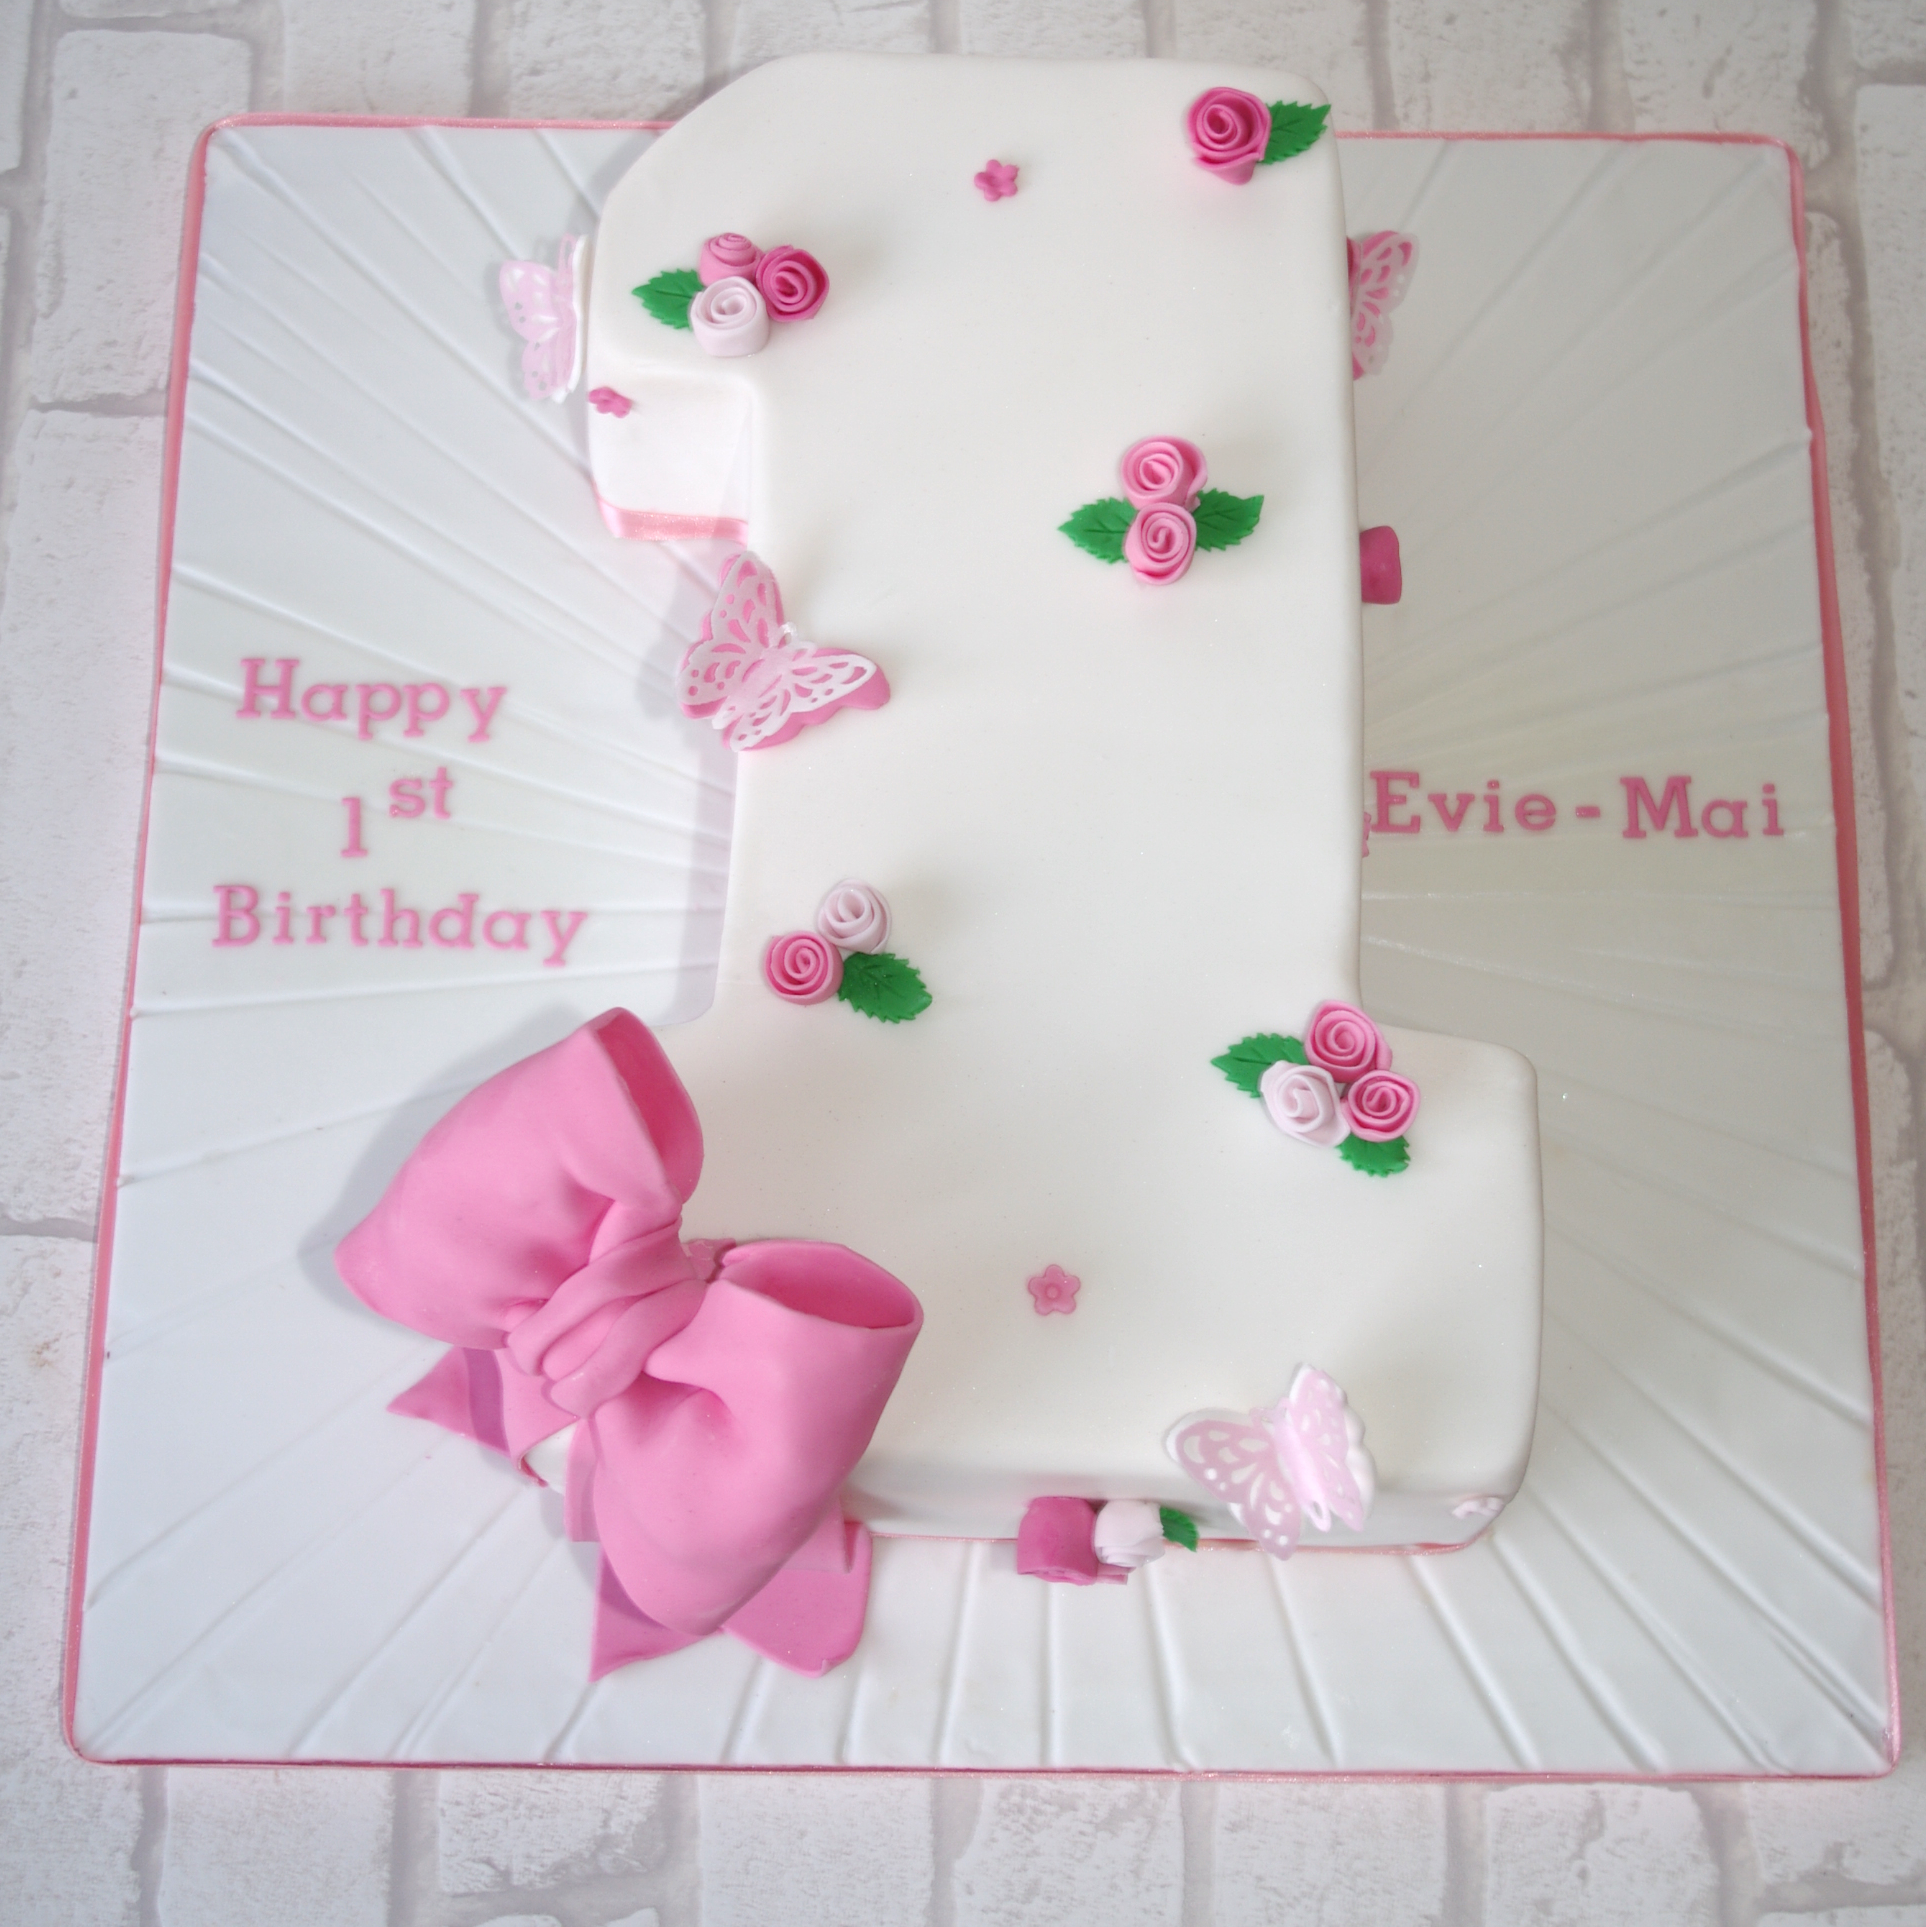 Number 1 Rose and Bow cake